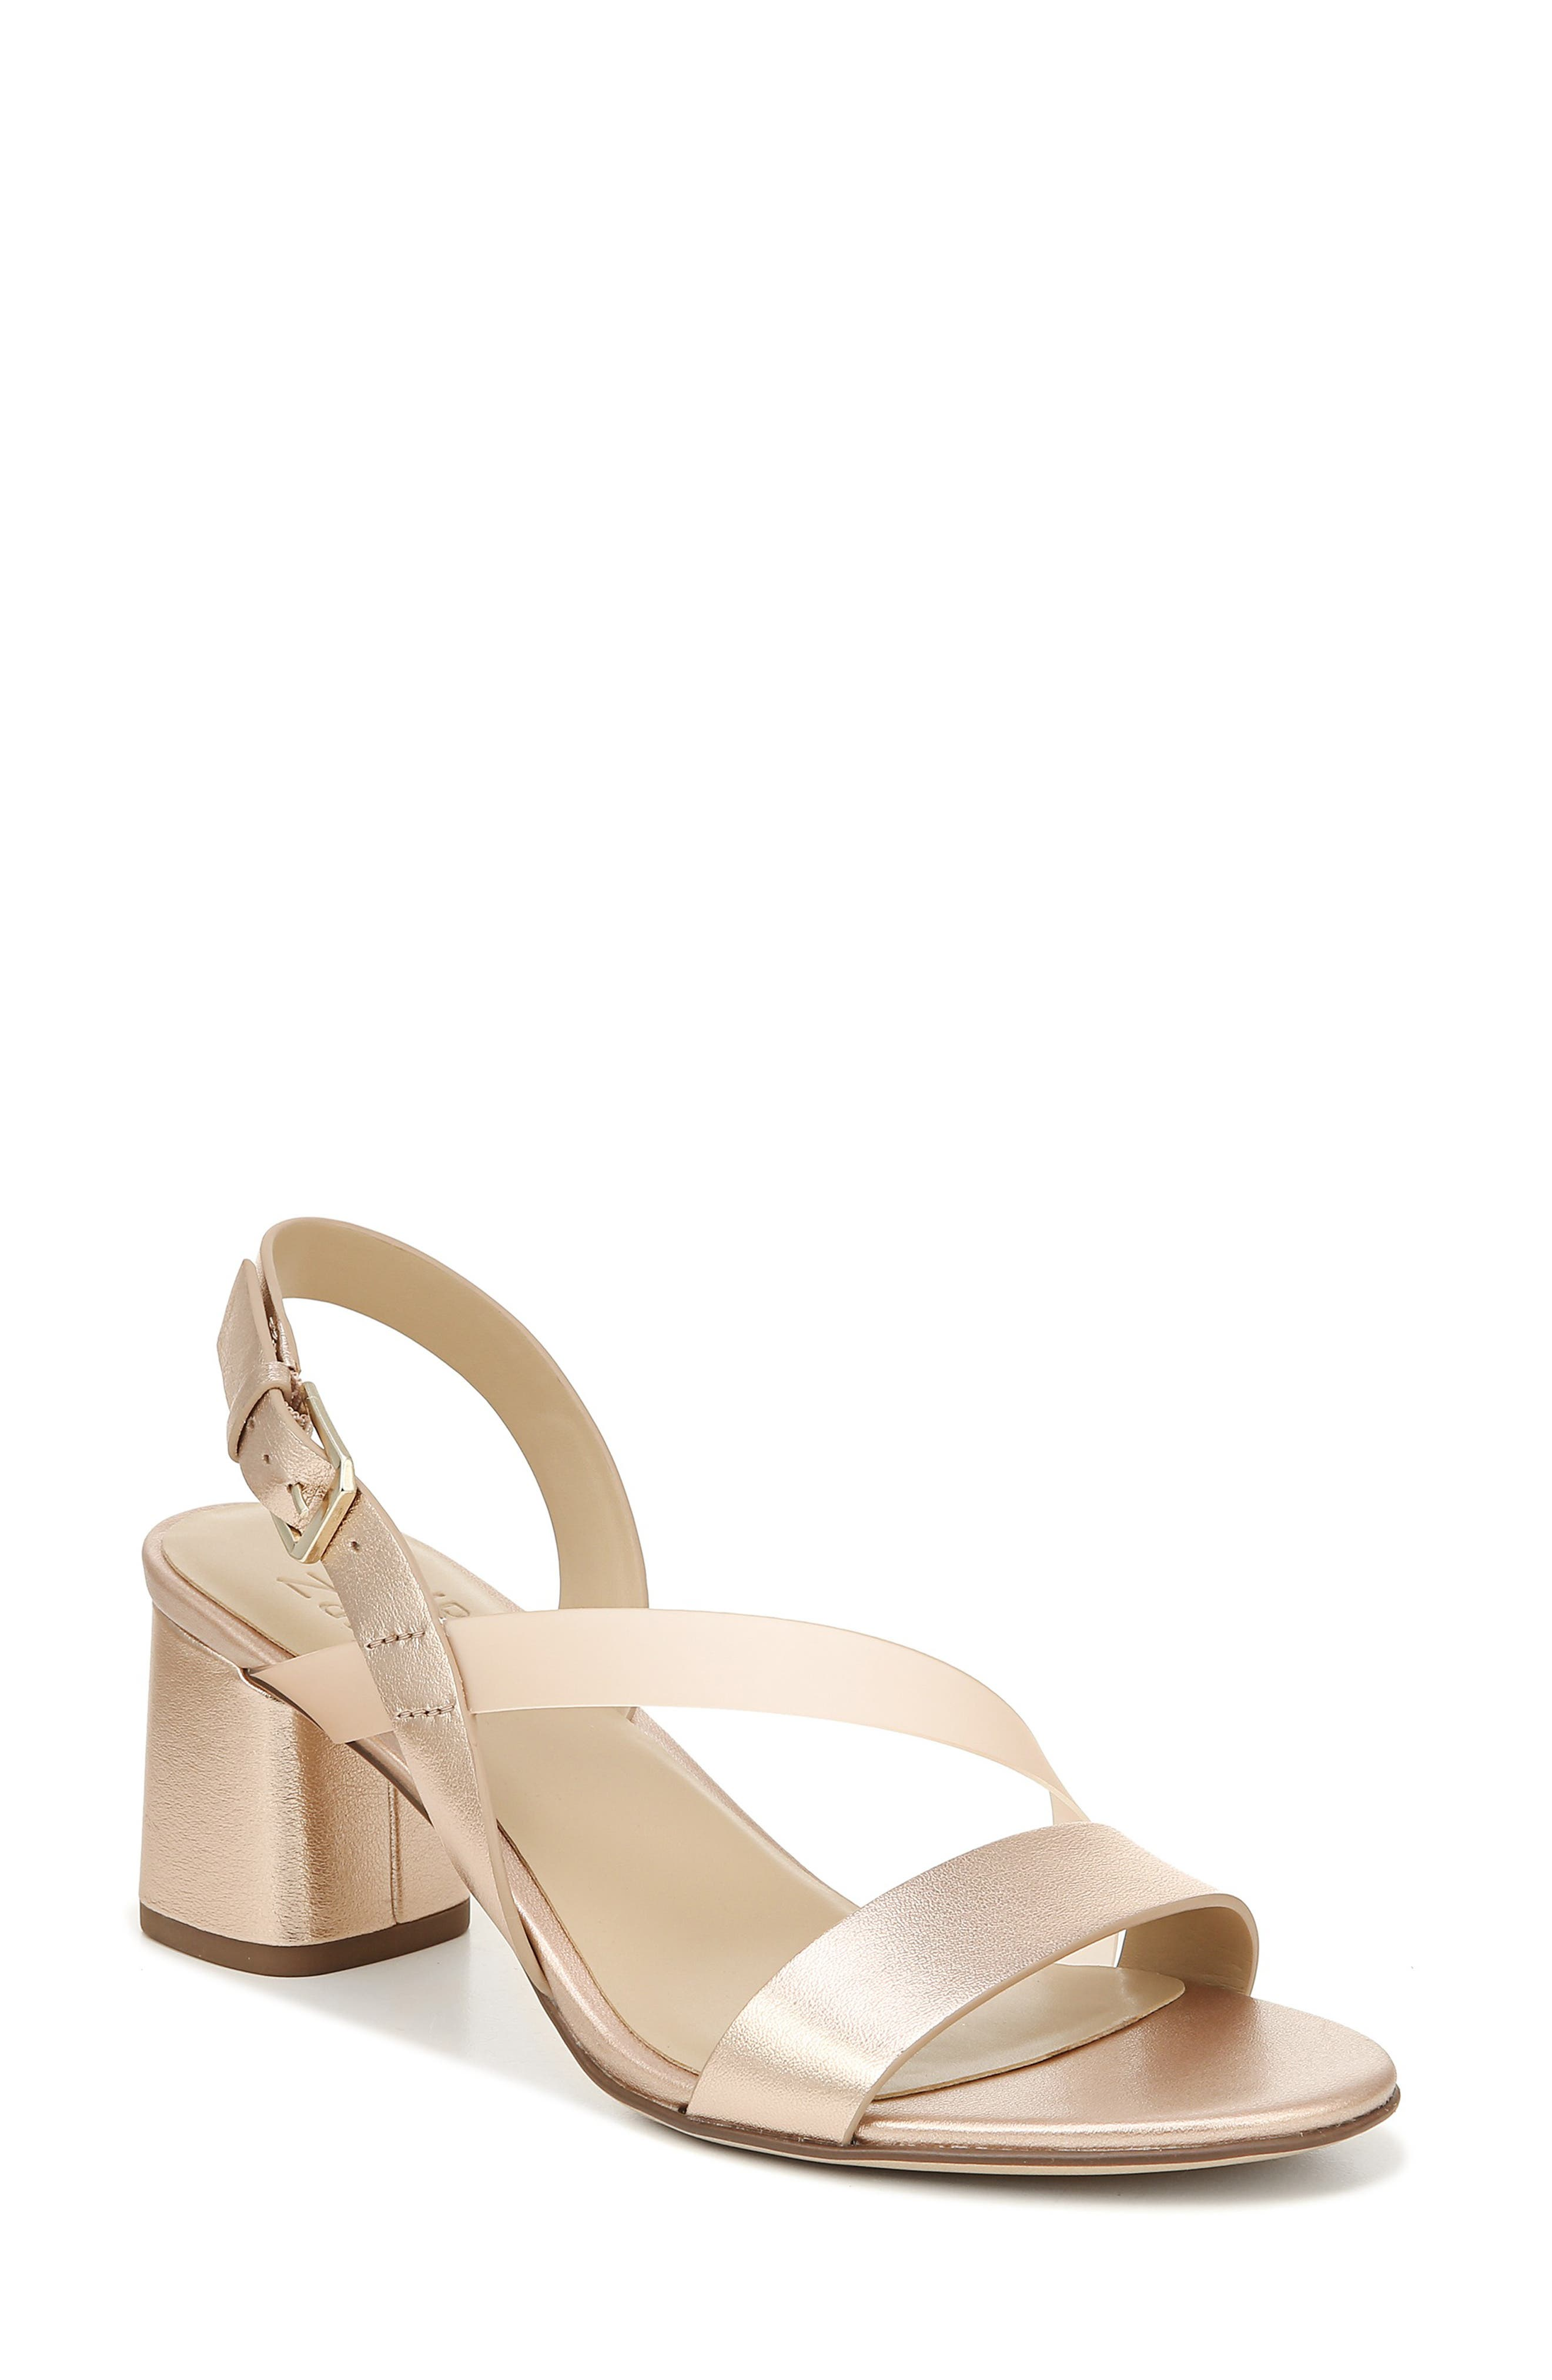 NATURALIZER Arianna Block Heel Sandal, Main, color, ROSE GOLD LEATHER